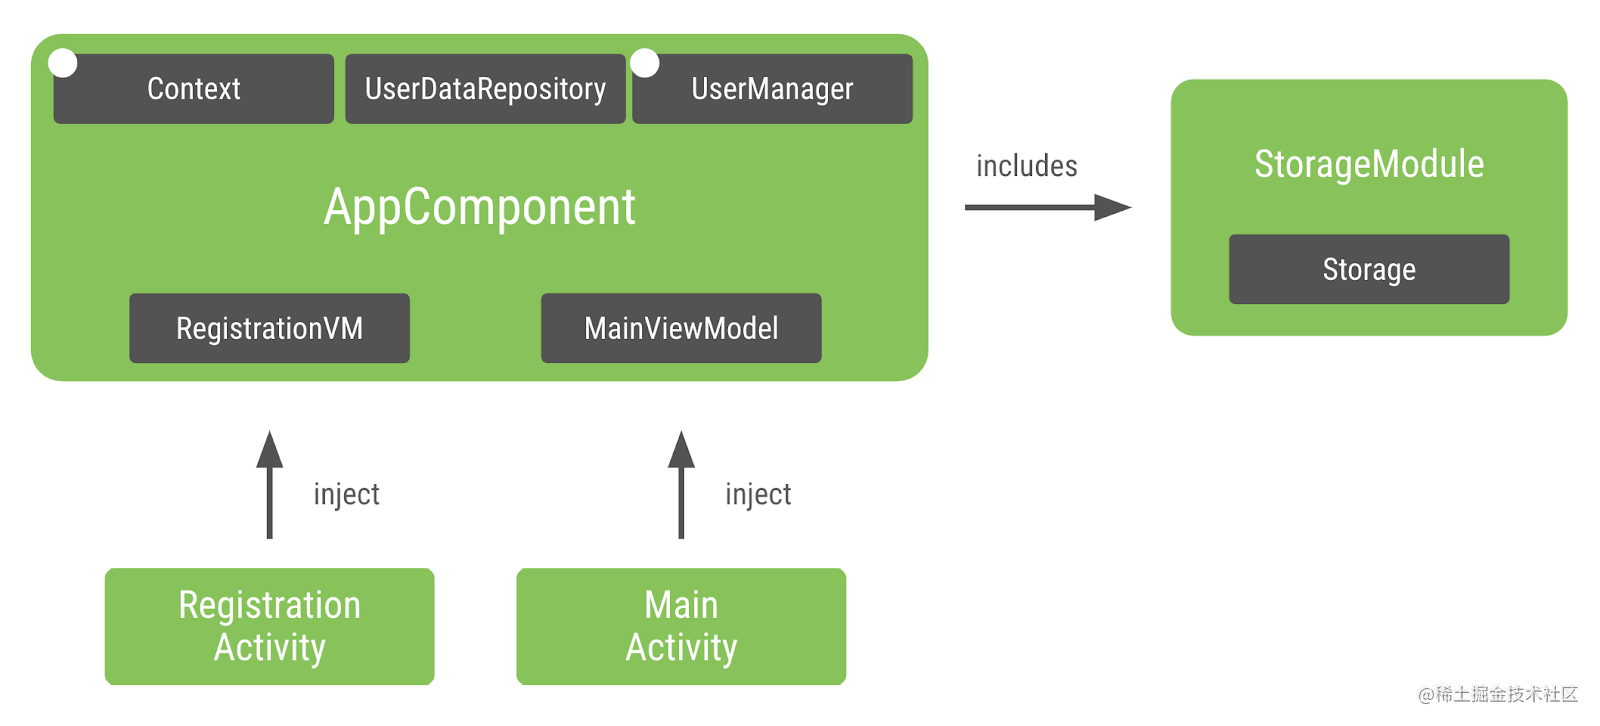 Current state of the graph with a unique instance of UserManager in AppComponent